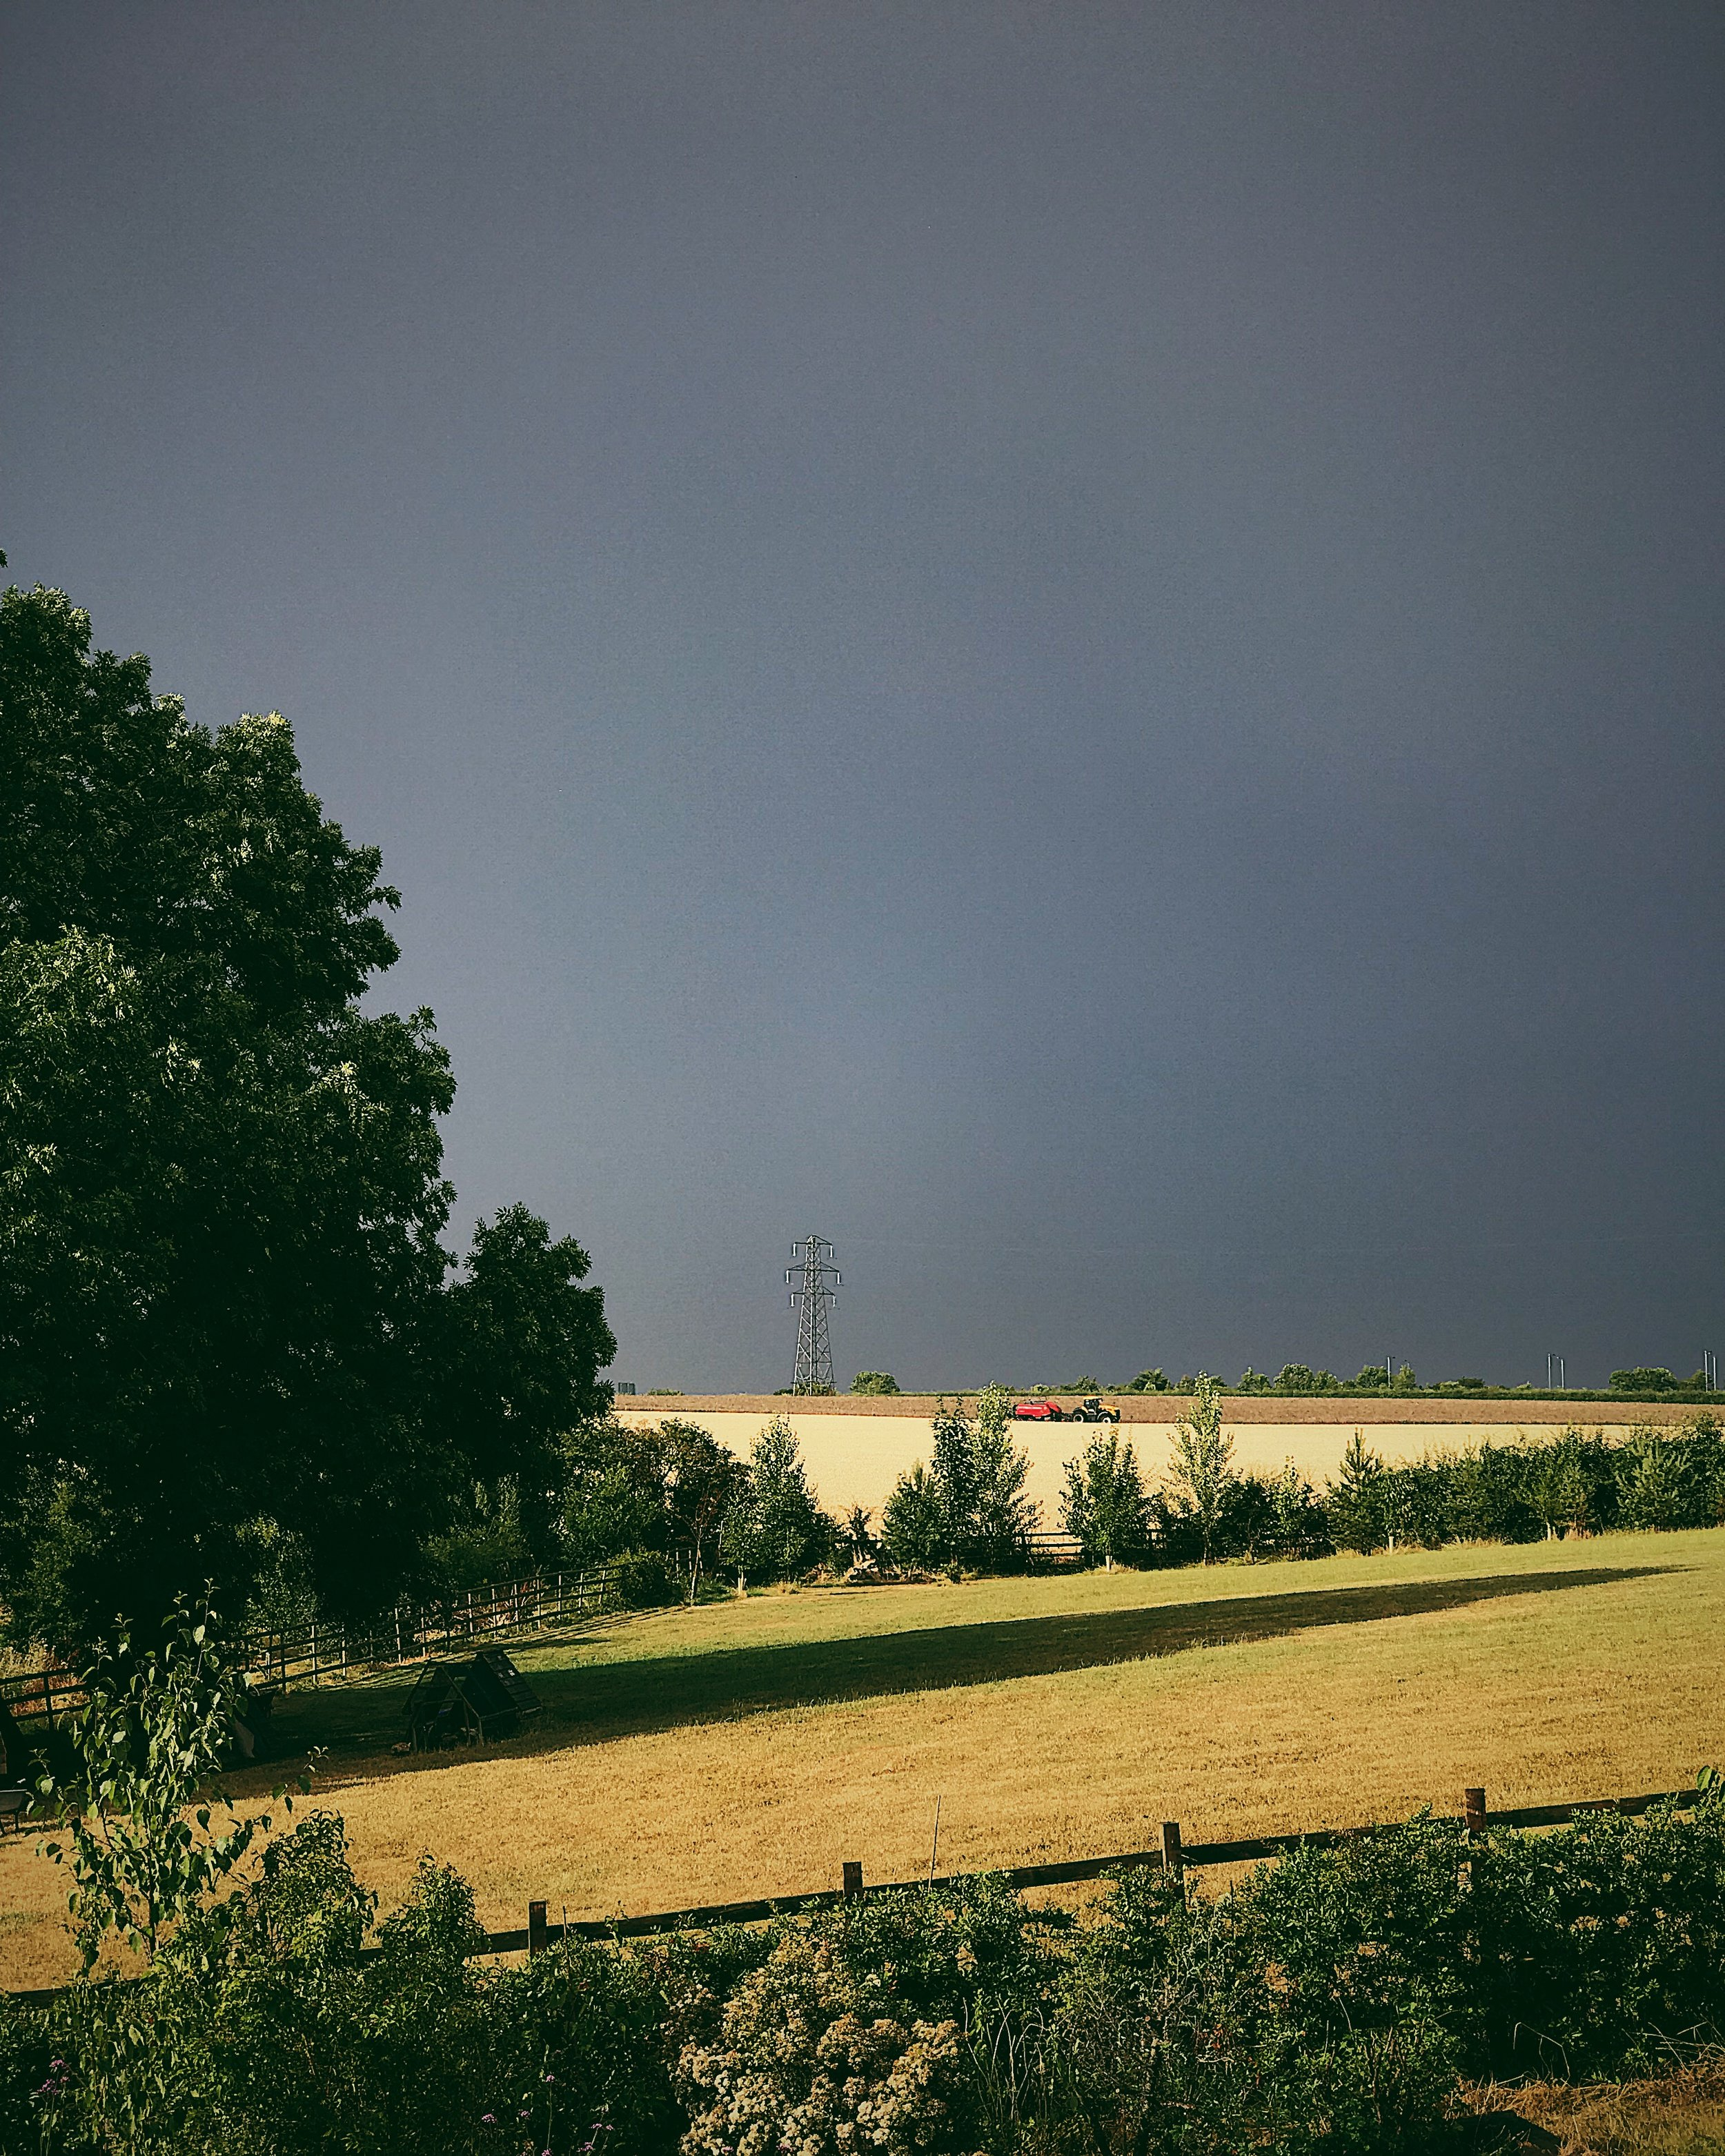 ash tree against a stormy sky